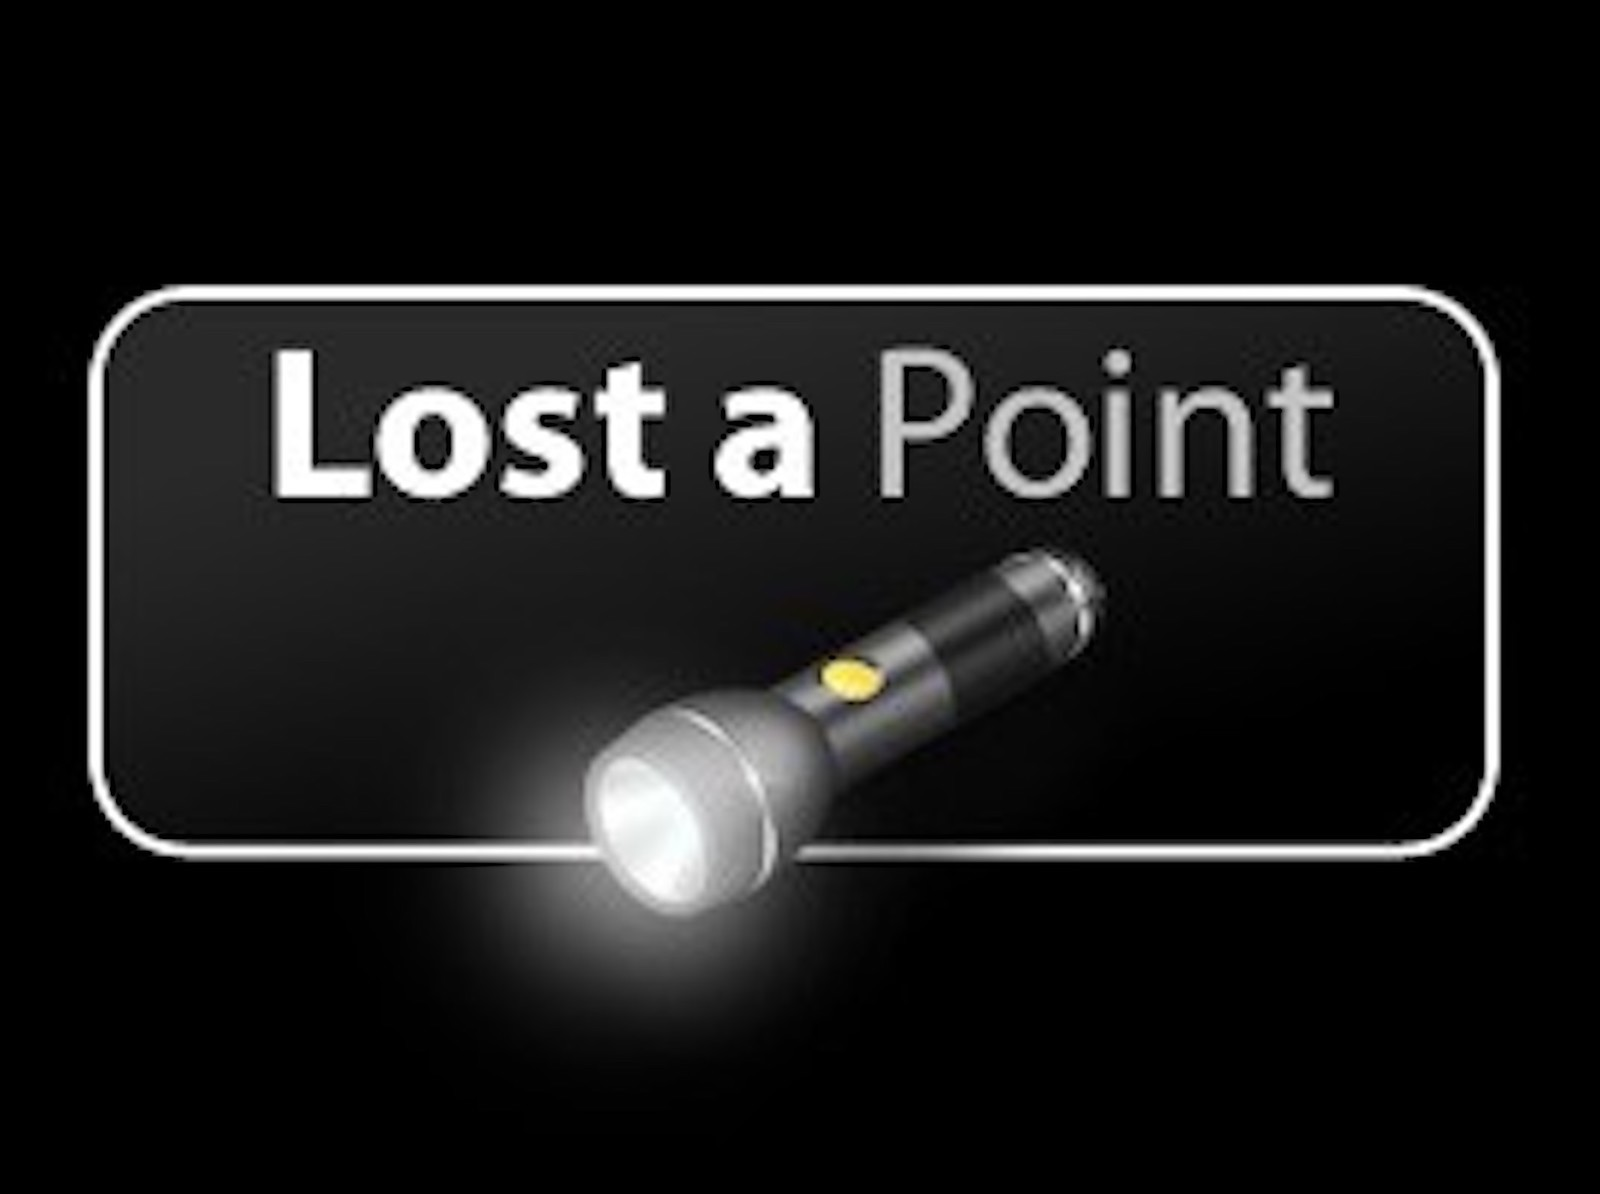 Lost a Point - Free P2P plugin